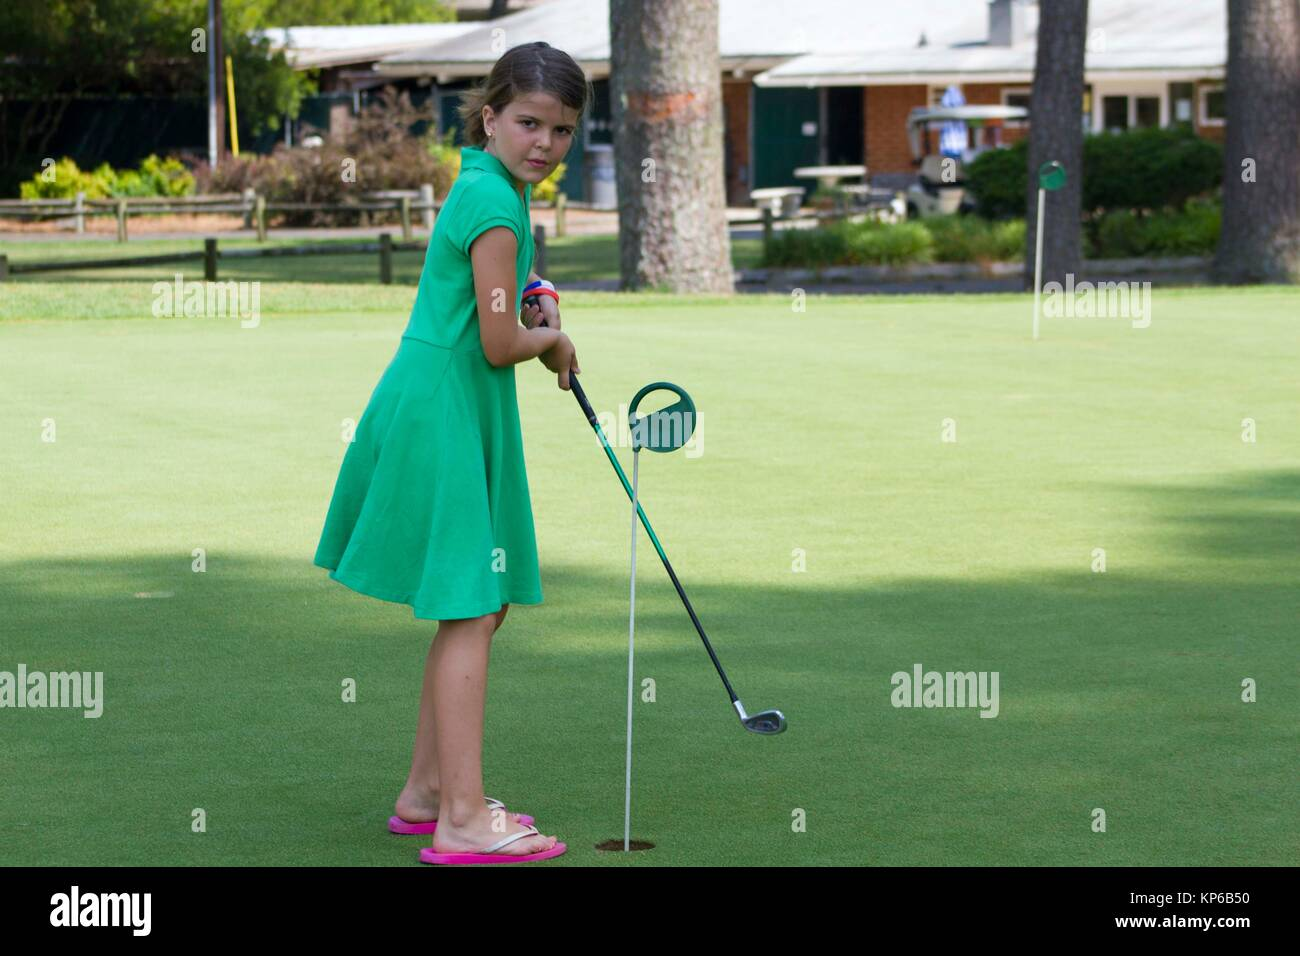 child golf swing stock photos child golf swing stock. Black Bedroom Furniture Sets. Home Design Ideas